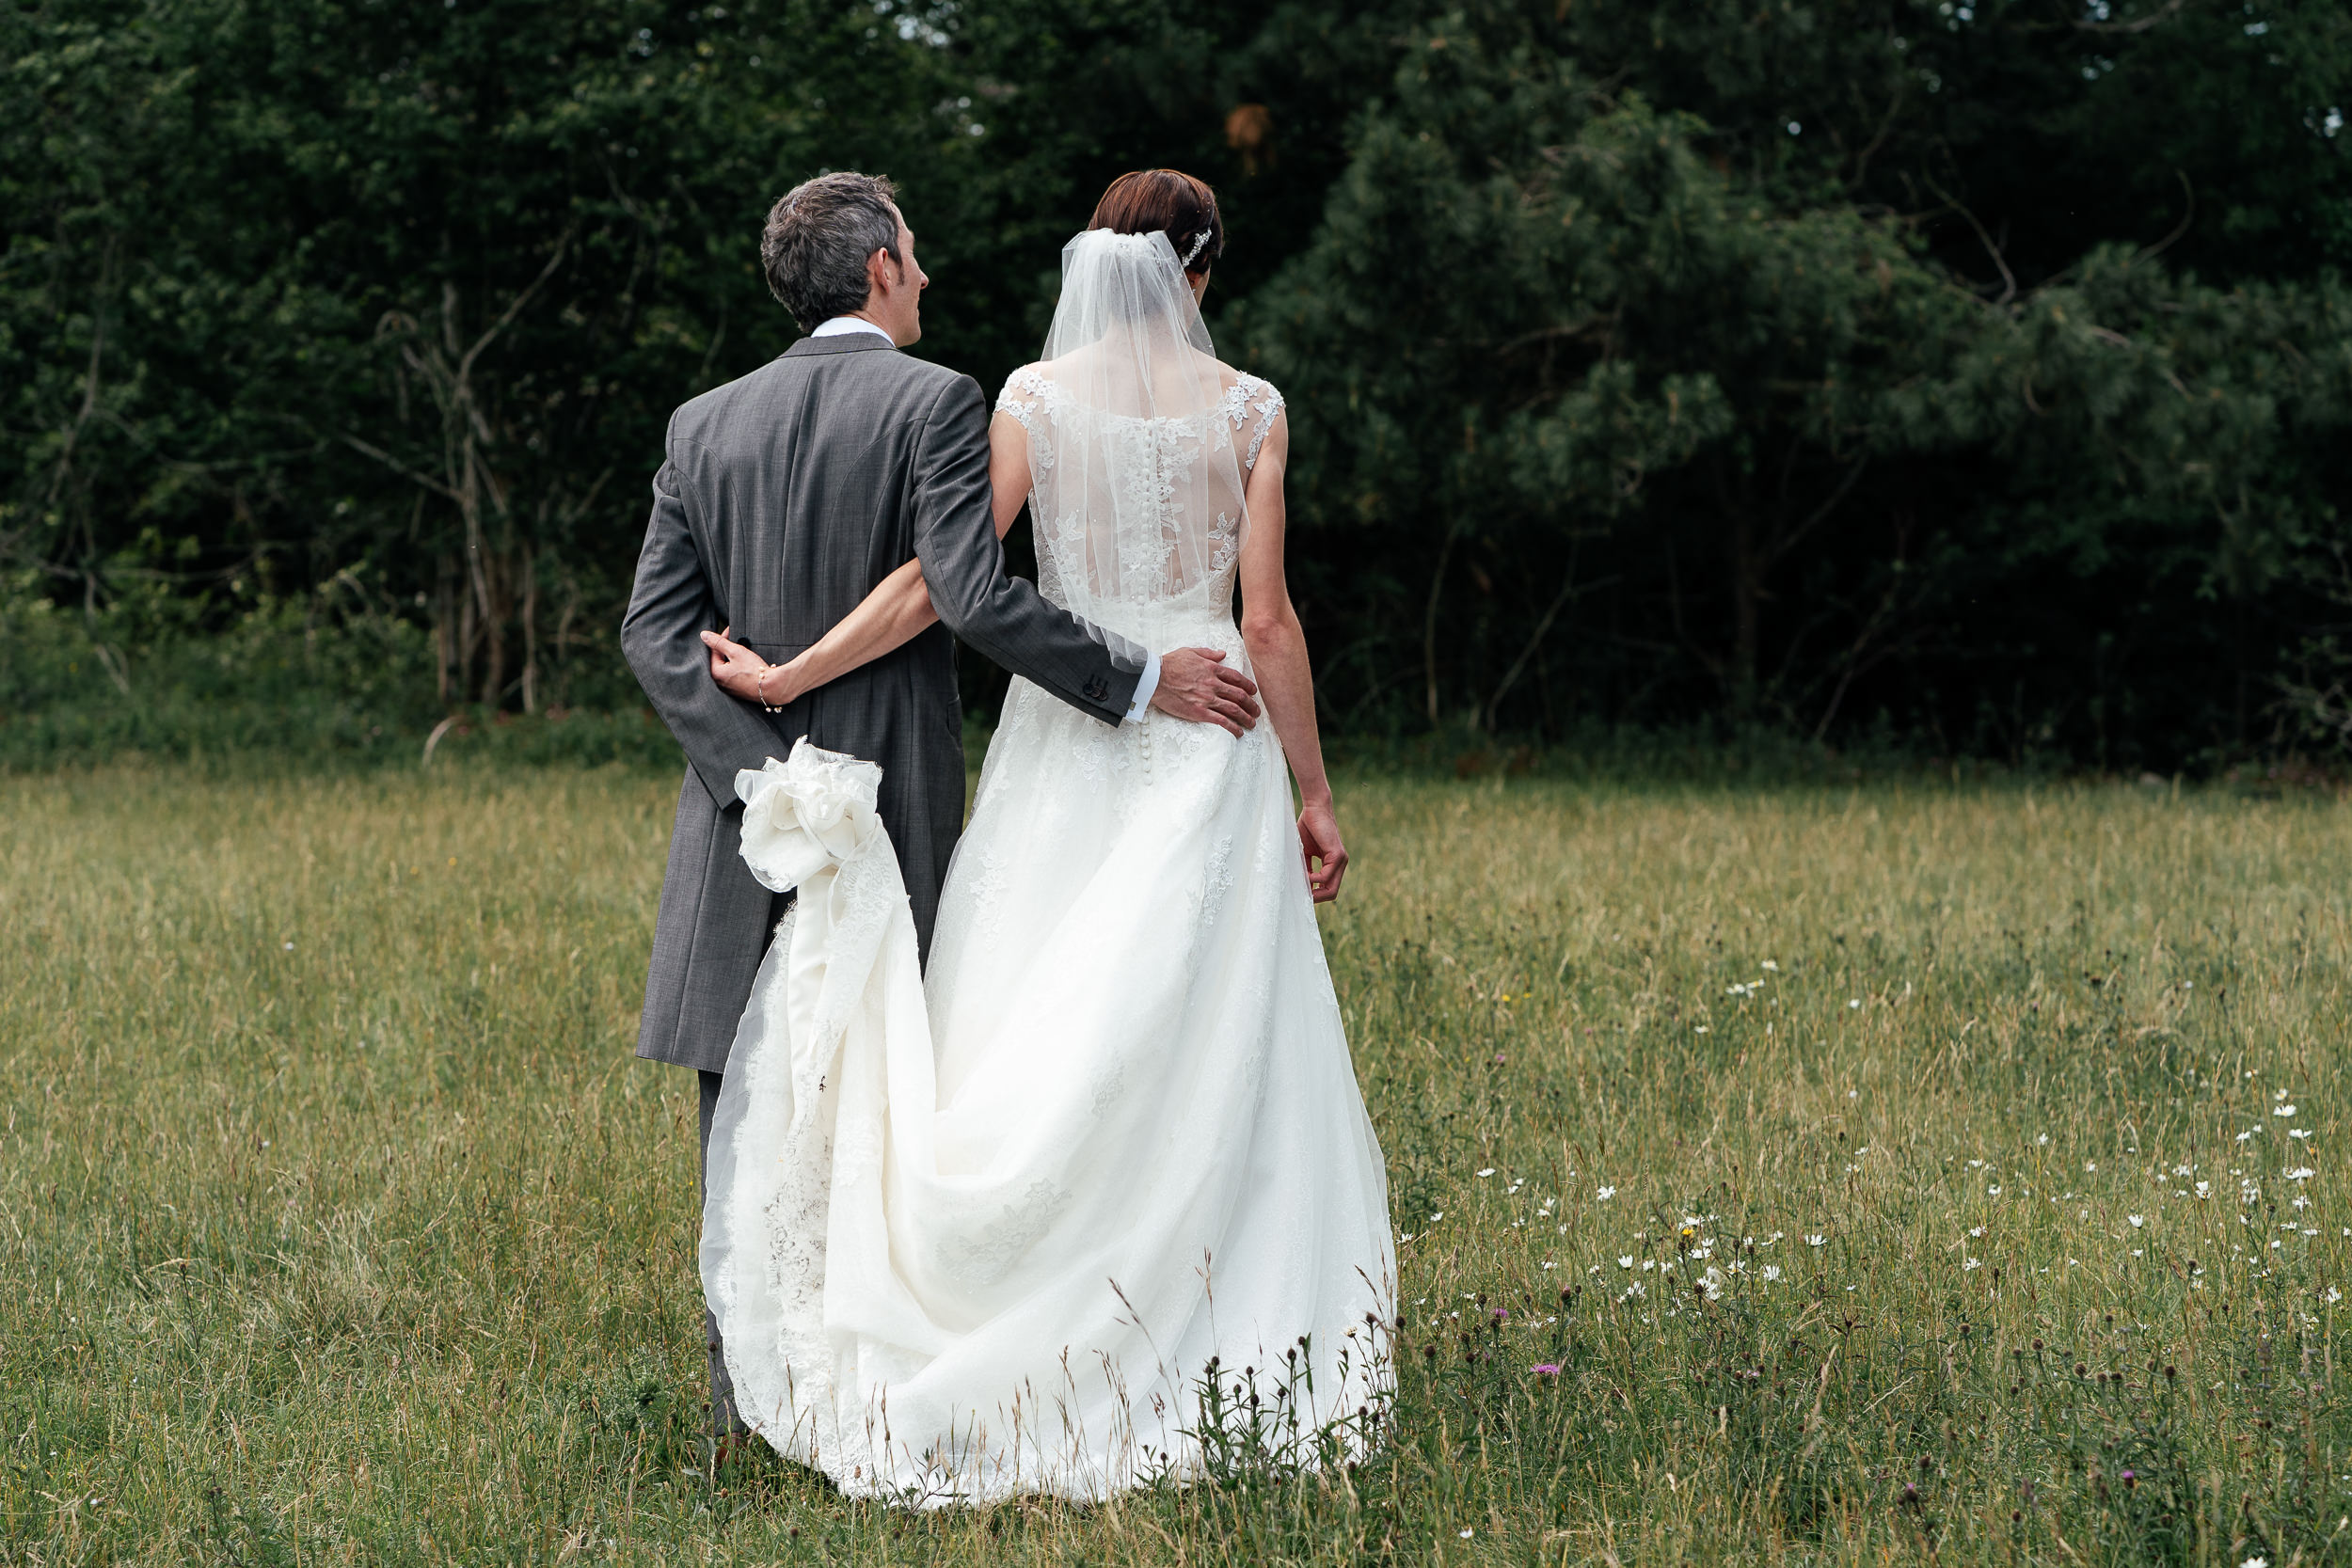 The Bride and Groom walk together on Clifton Downs